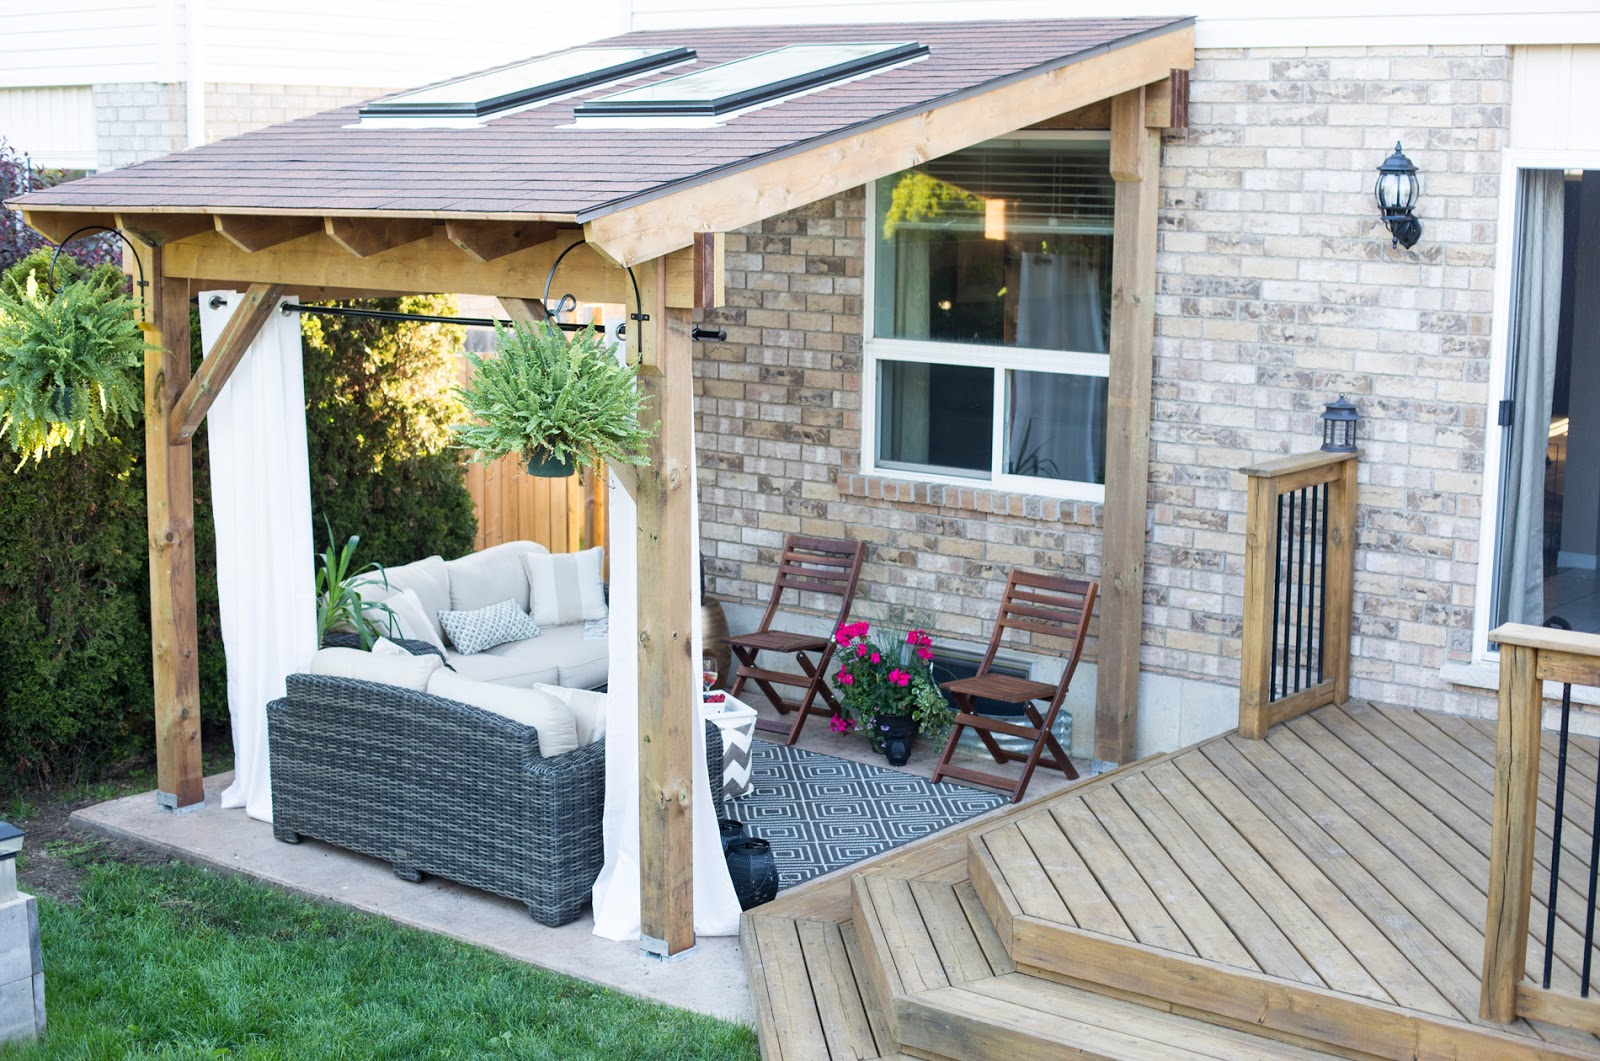 Easy build Covered patios designs - CareHomeDecor on Backyard Patio Cover Ideas  id=59269